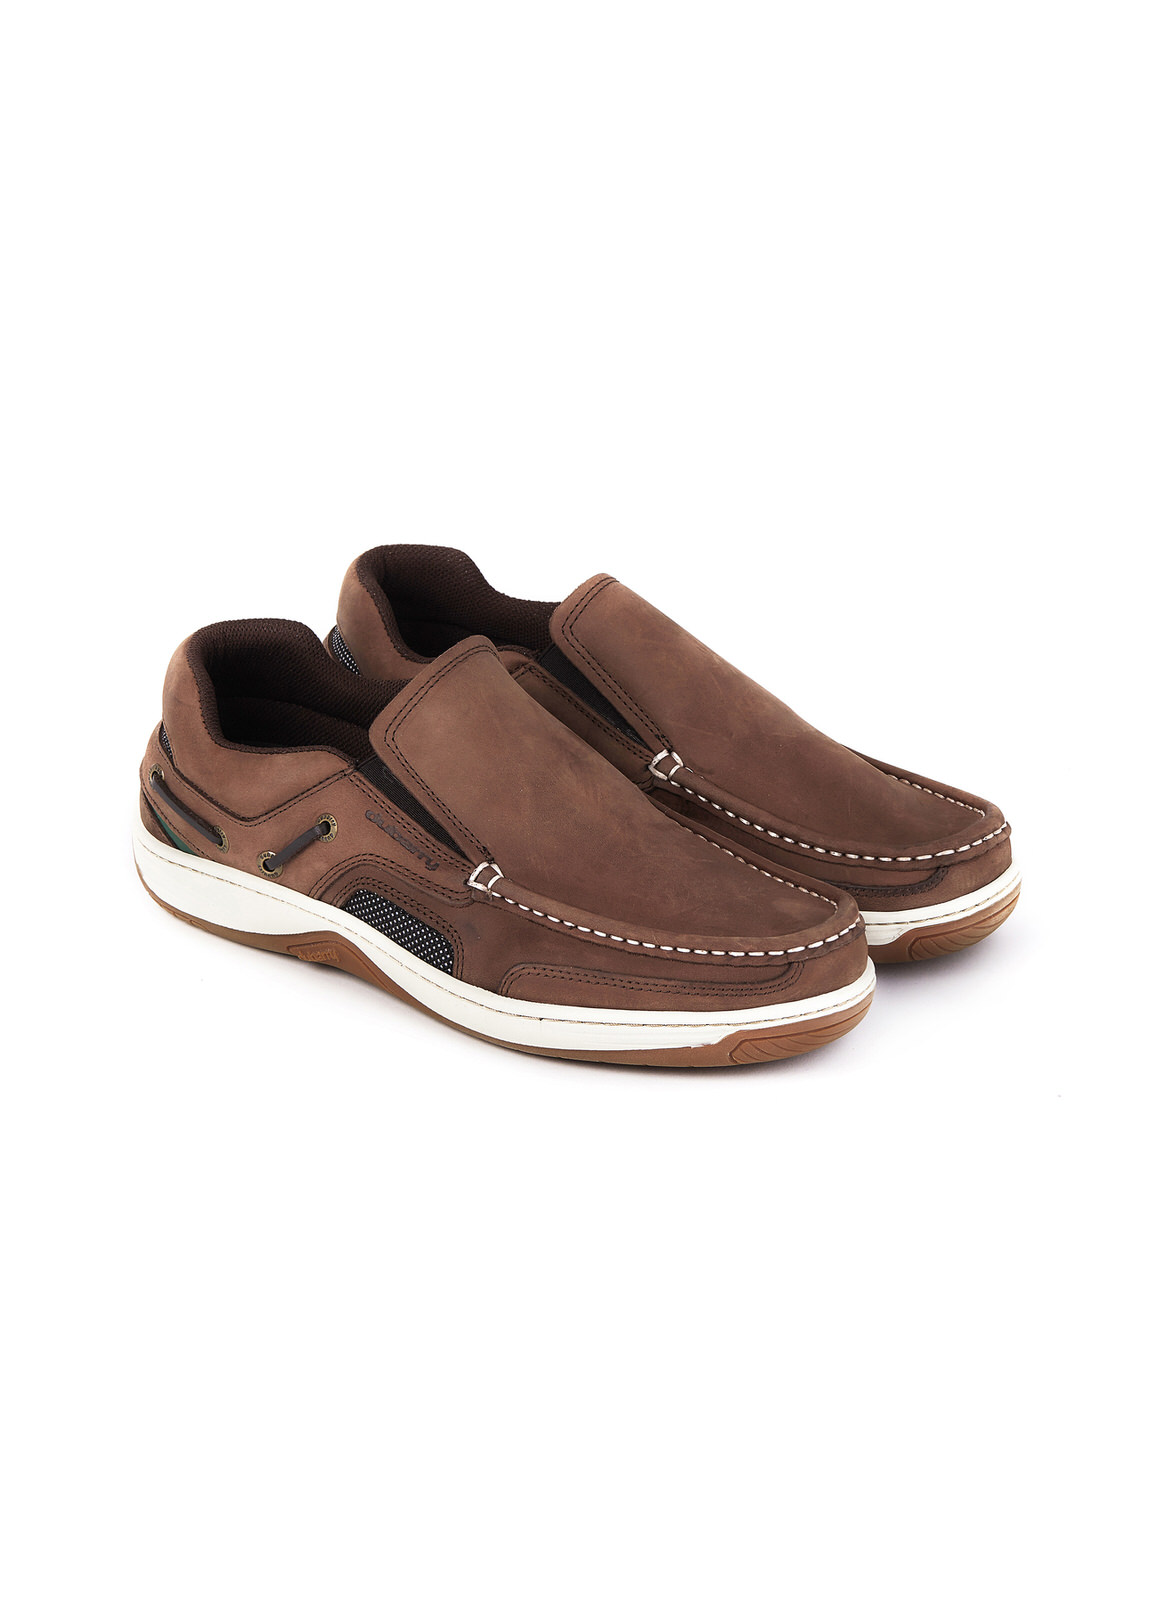 Yacht_Loafer_Donkey_Brown_Image_1